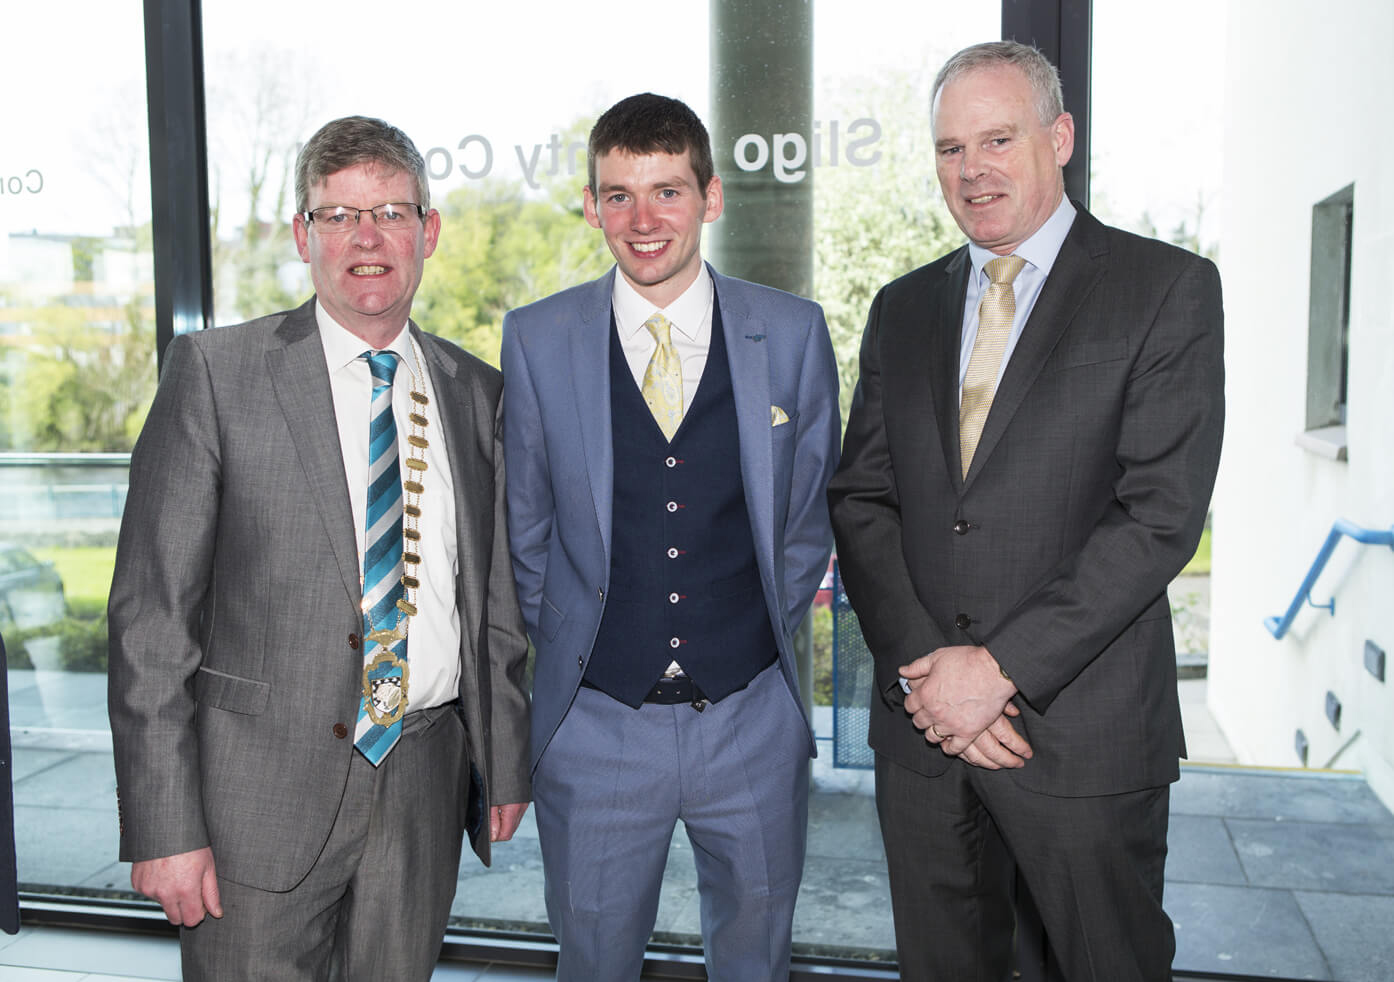 CIVIC RECEPTION FOR GRAND NATIONAL CHAMPION